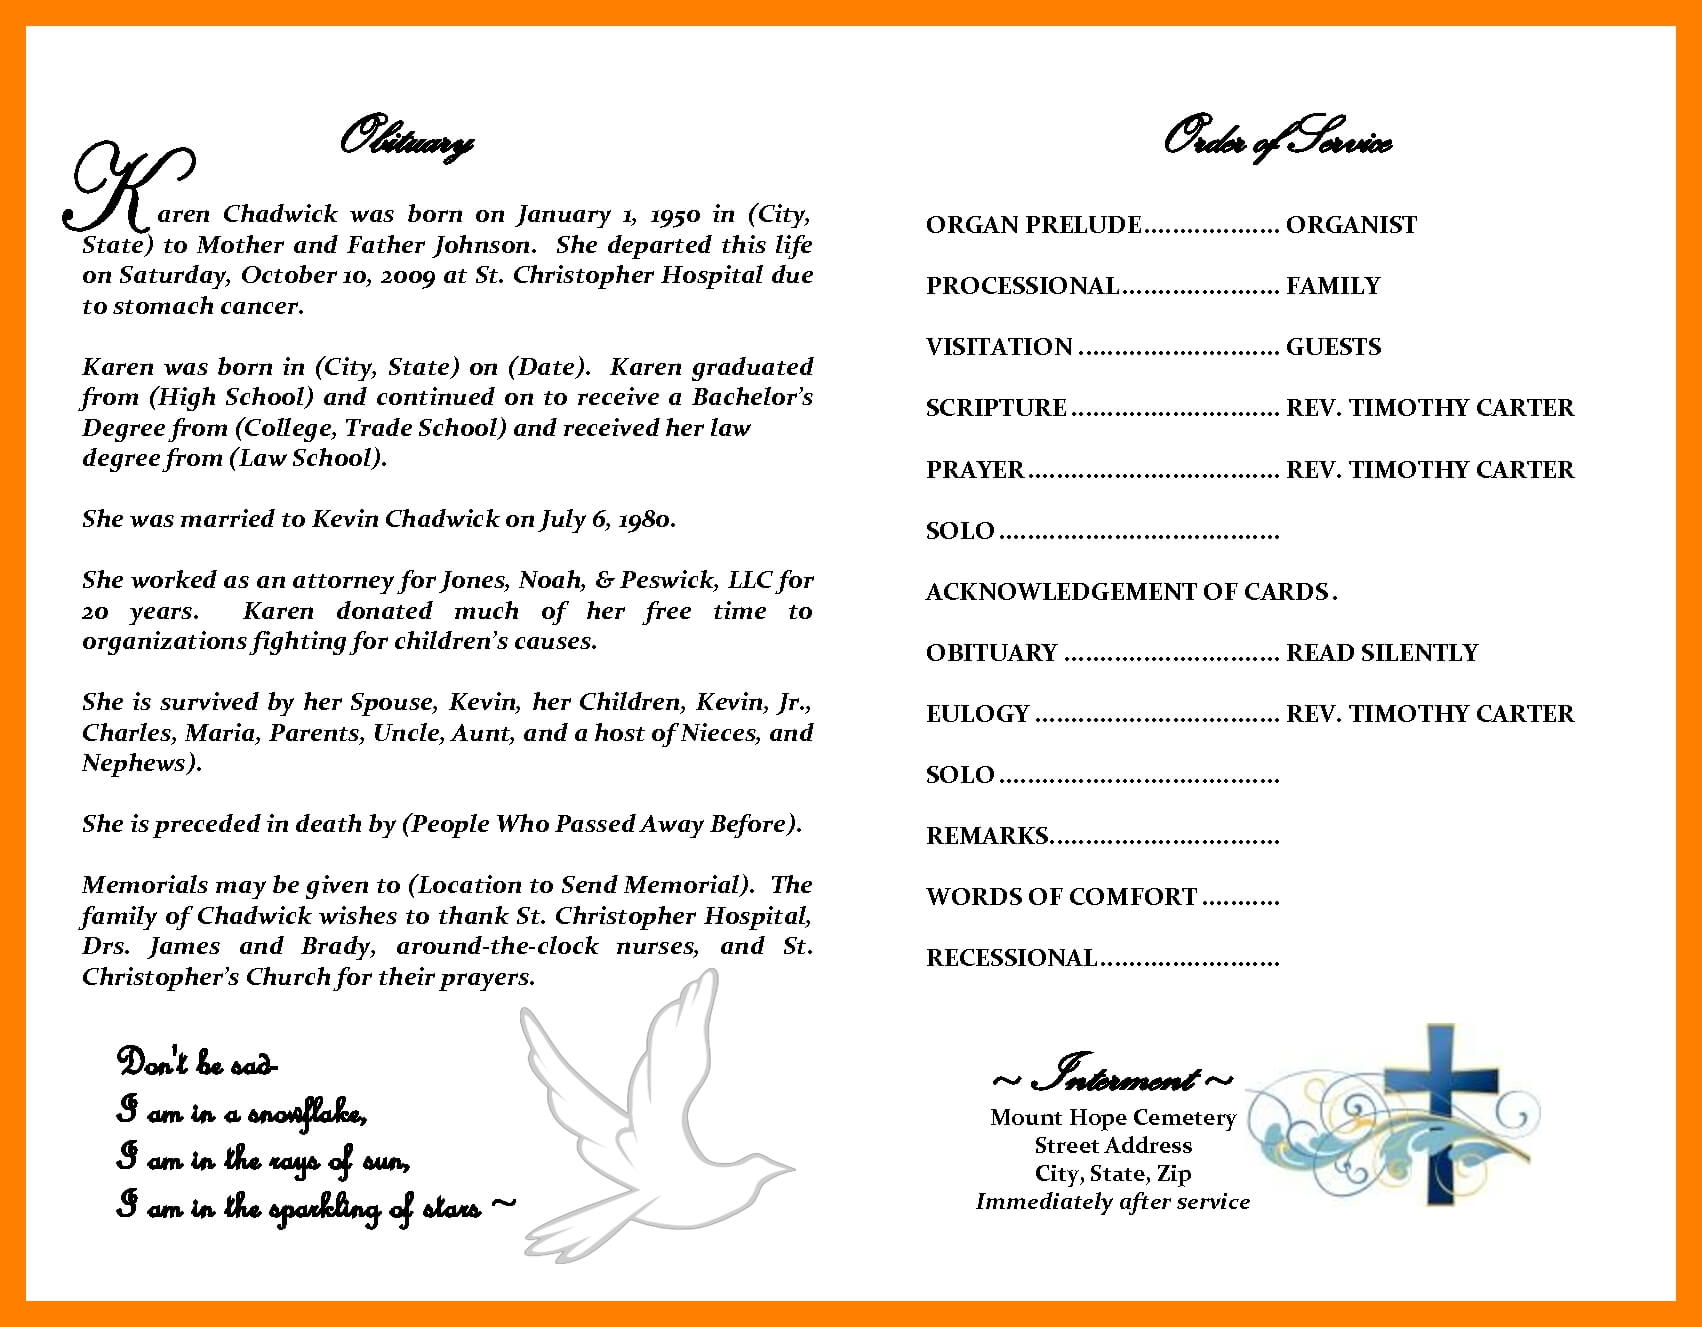 Obituary Template Word Document - Atlantaauctionco With Regard To Obituary Template Word Document